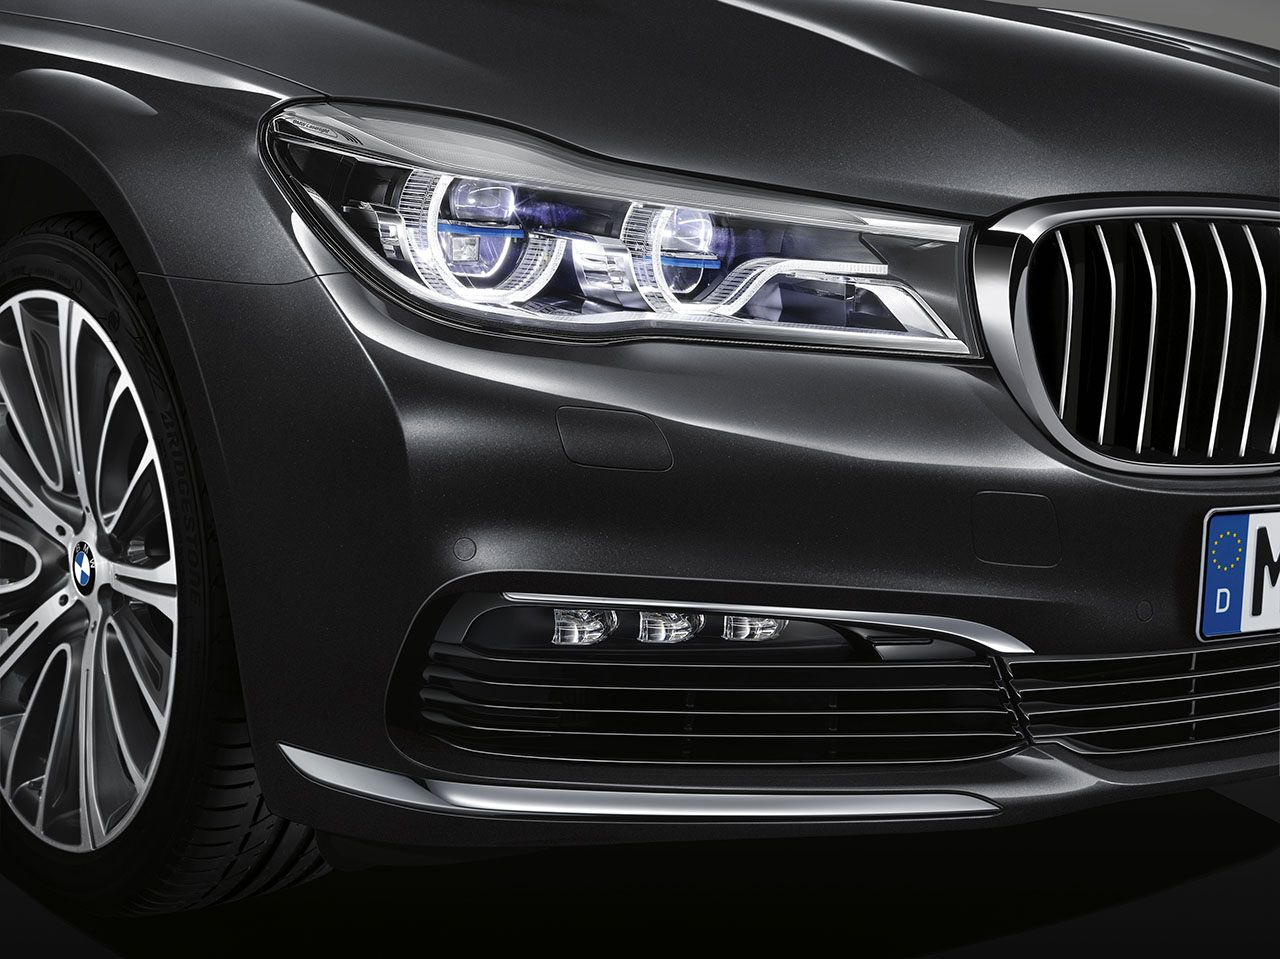 BMW Working to Bring Laser Lights to the US